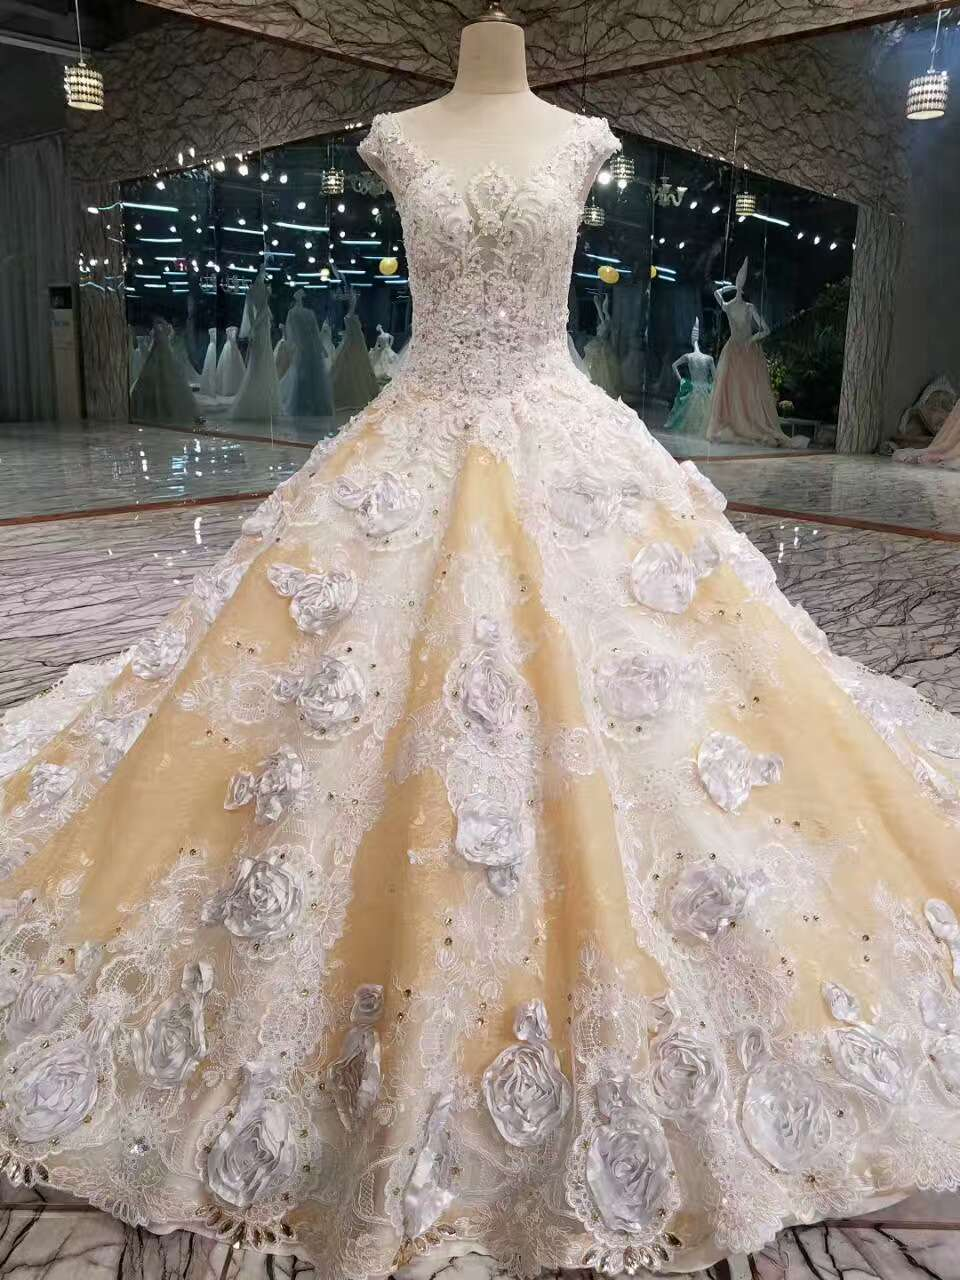 2019 Floral Wedding Dresses Lace Up With Appliques And Crystals Scoop Neck A-Line